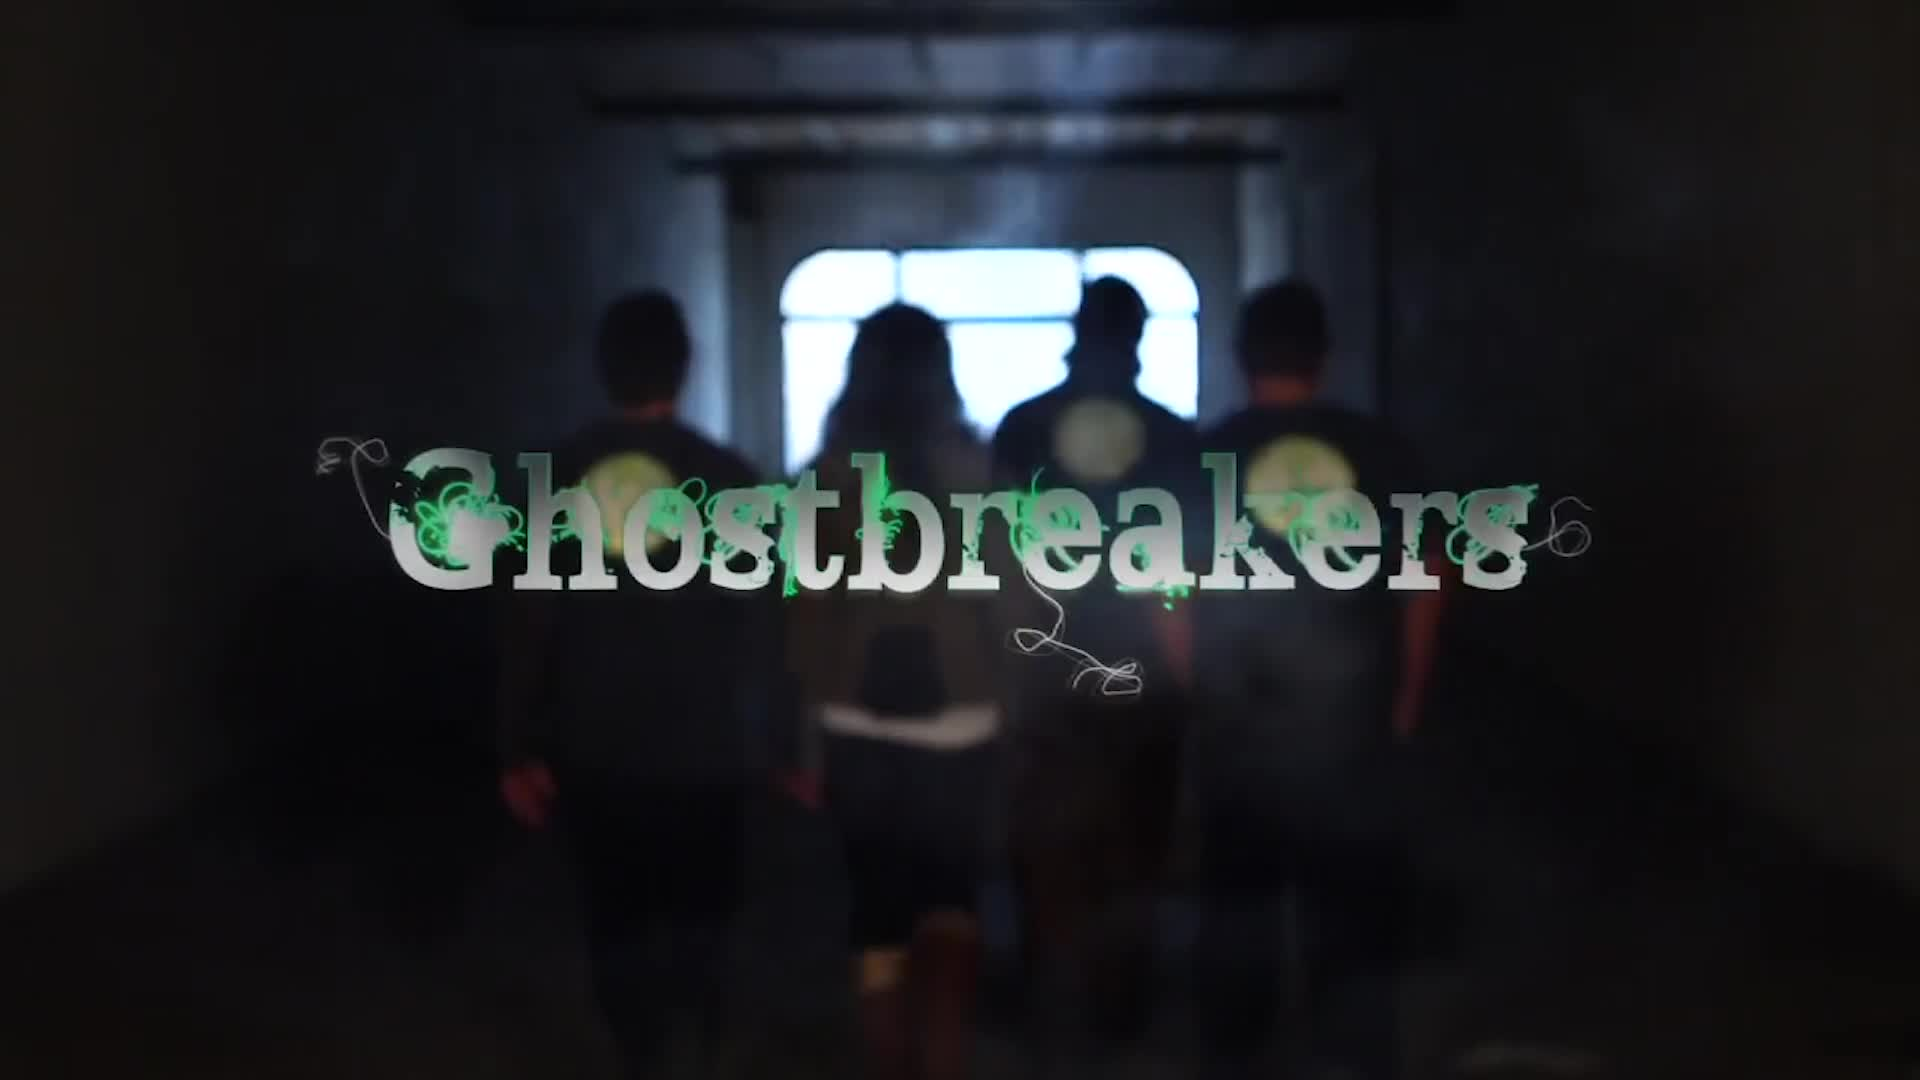 Ghostbreakers full movie kickass torrent